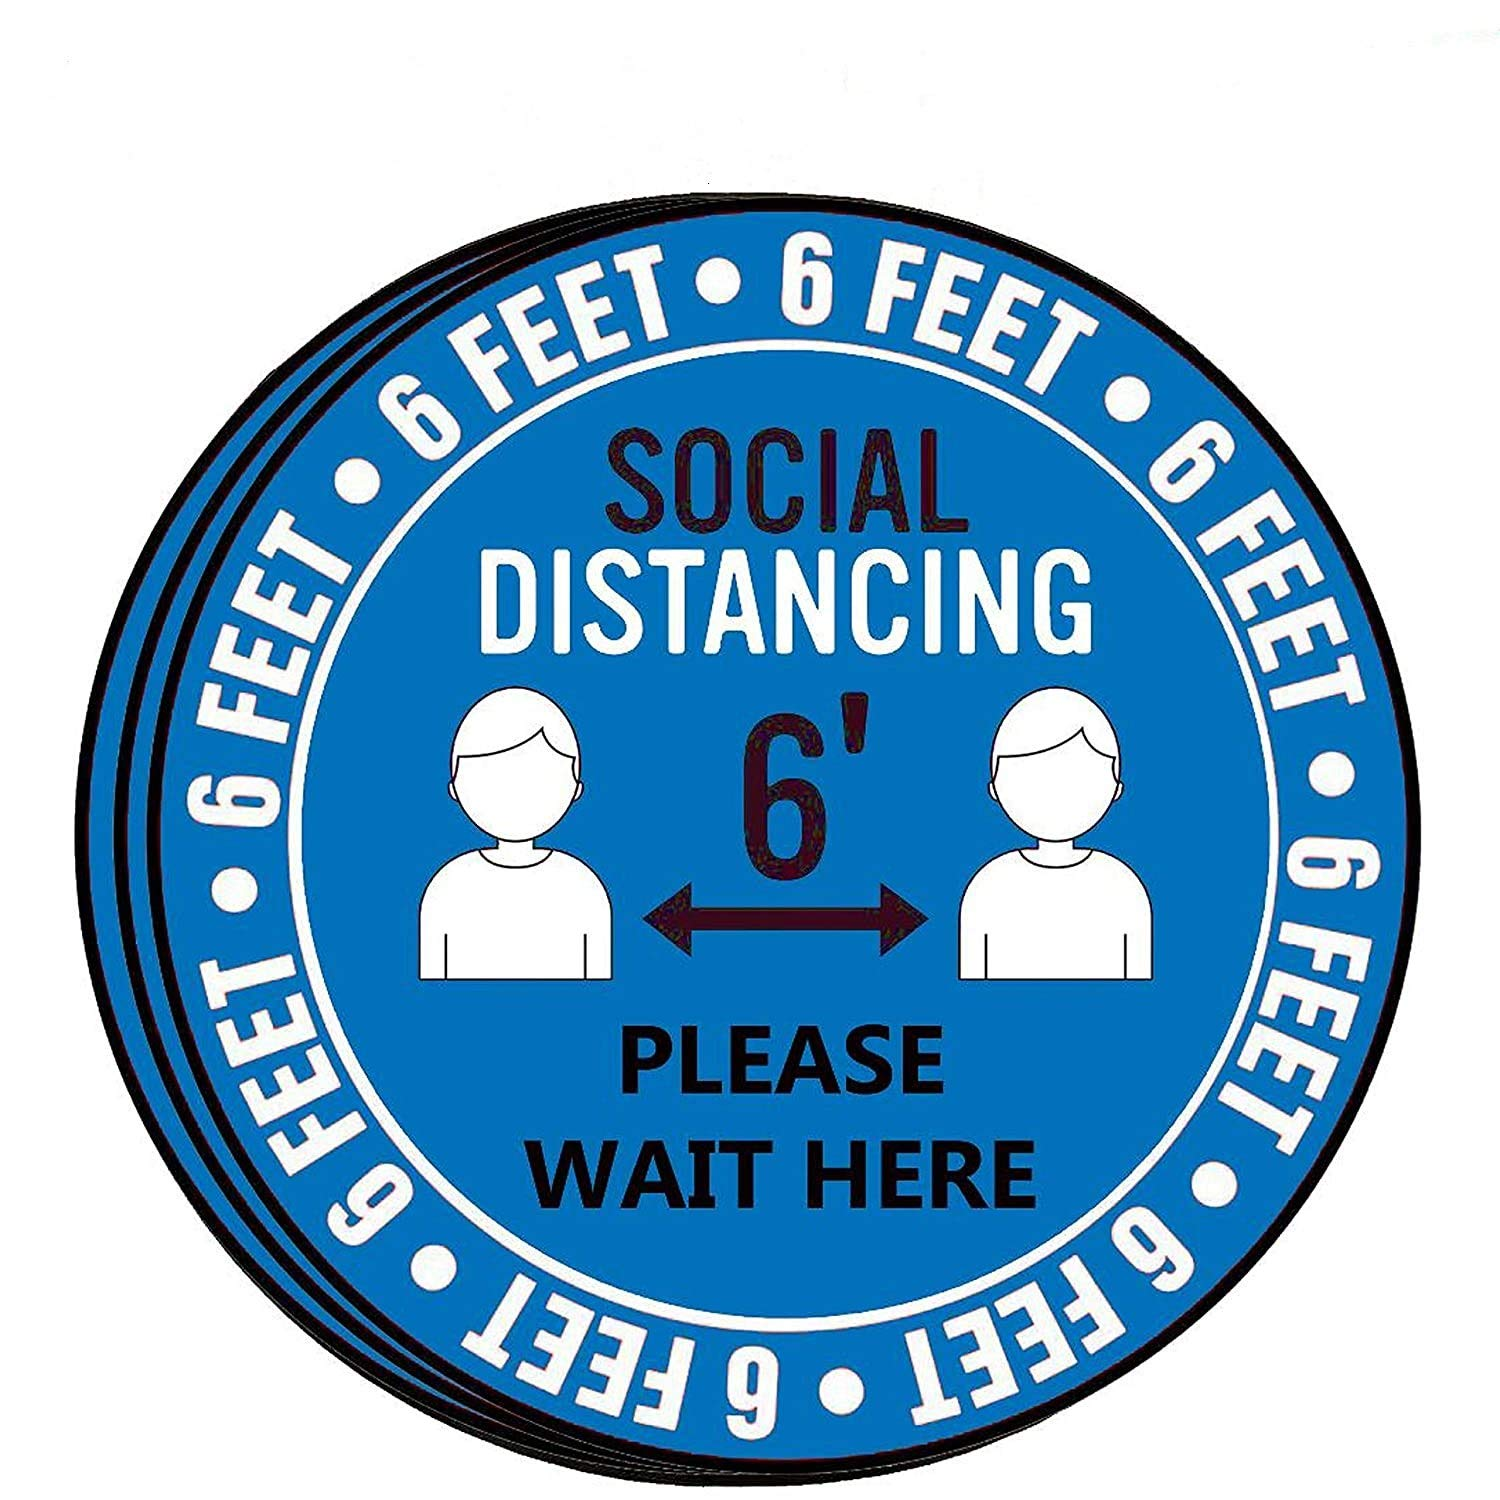 and Lab Pharmacy Bank Safety Floor Sign Marker Commercial Grade Anti-Slip Grocery 30x30CM for Crowd Control Guidance Nepdome Social Floor Decal Stand Decal 6 Foot Distance